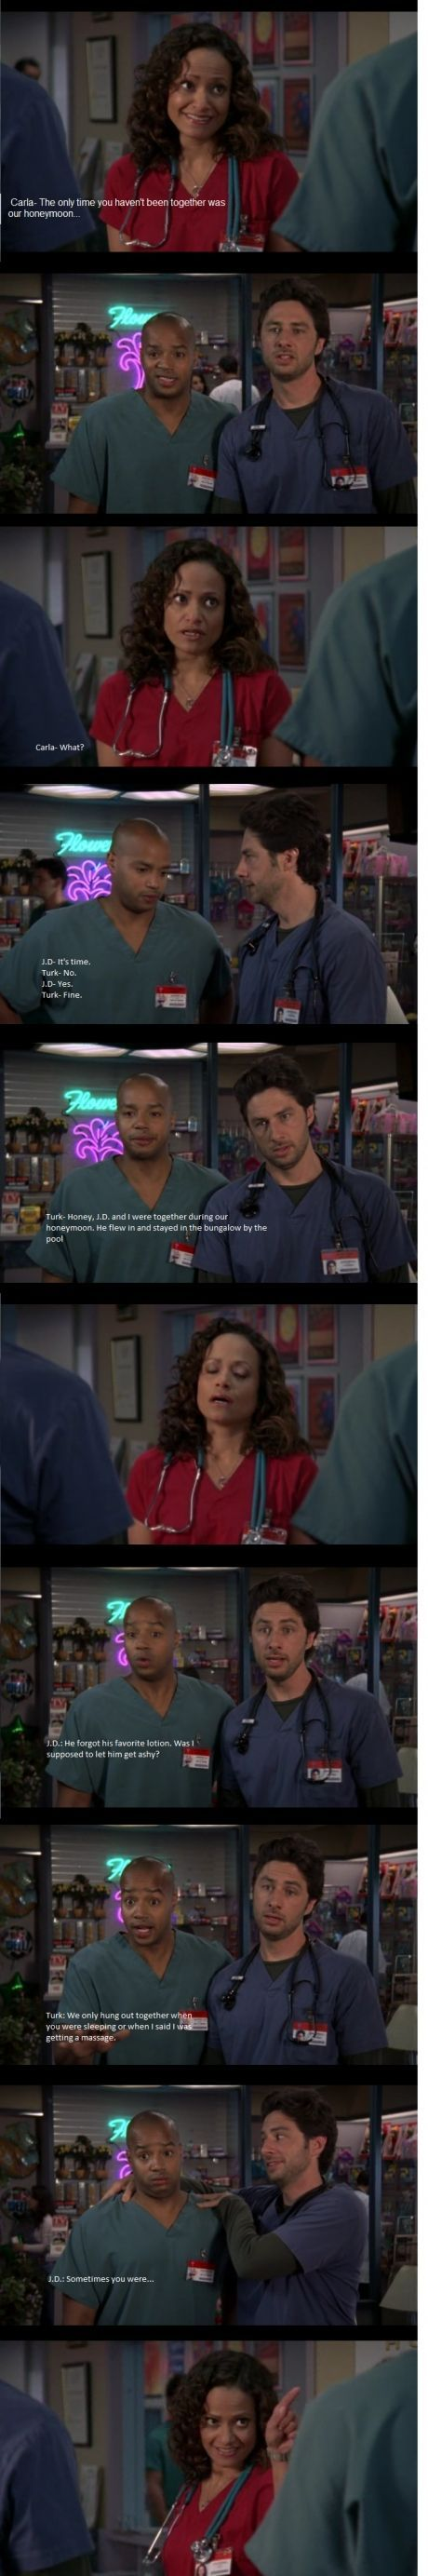 Scrubs - JD and Turk's friendship was one of a kind and fans wouldn't have it any other way.